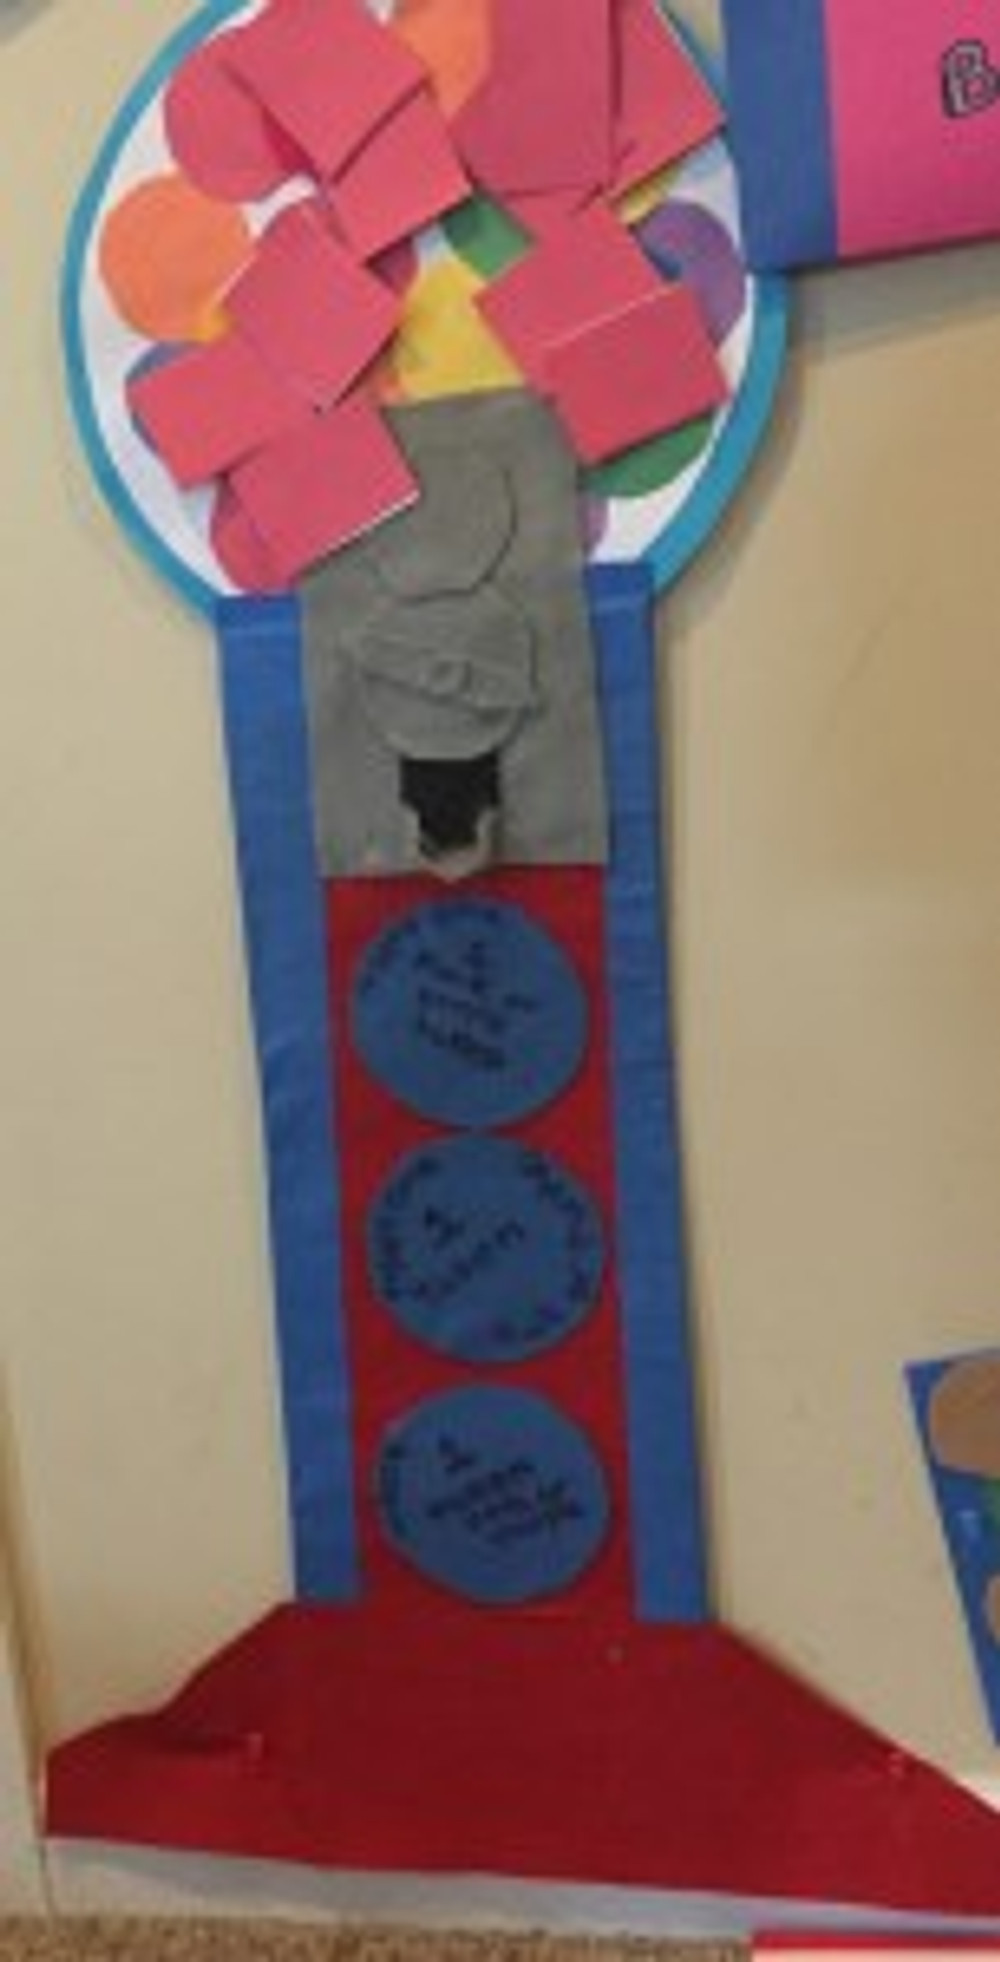 The teenager came up with the gumball machine design to represent earning individual rewards.